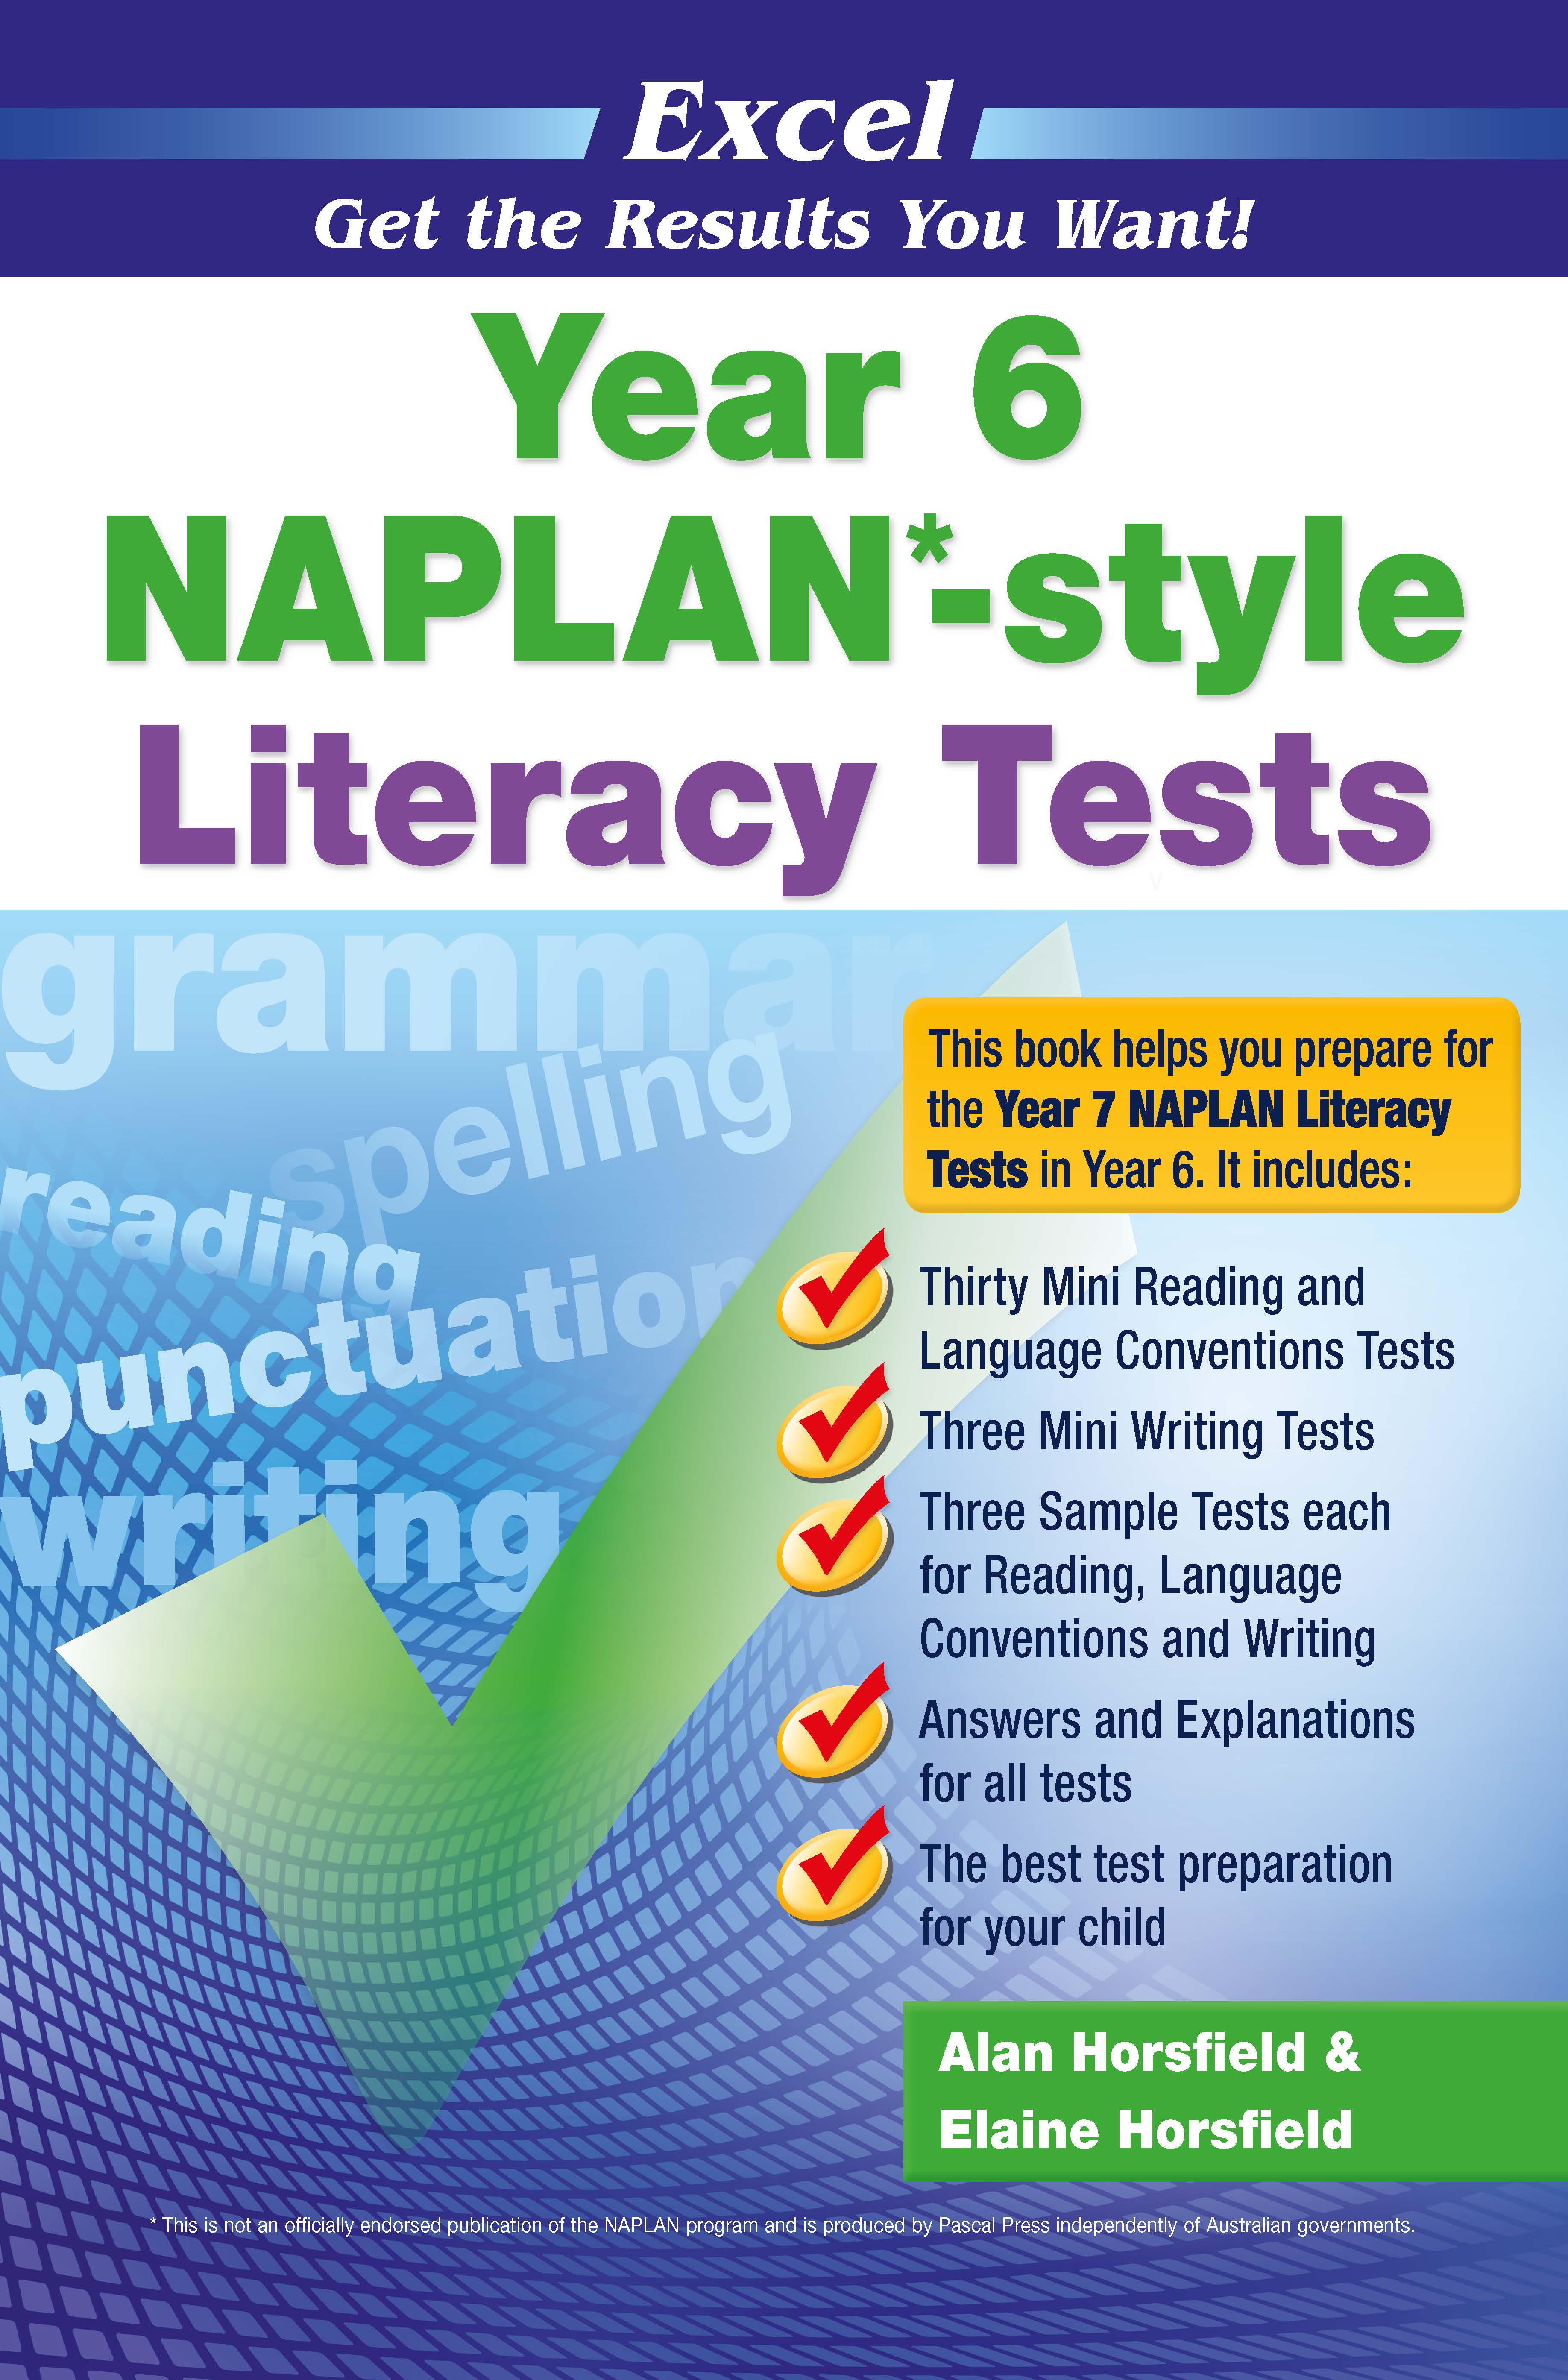 Excel NAPLAN*-style Literacy Tests Year 6